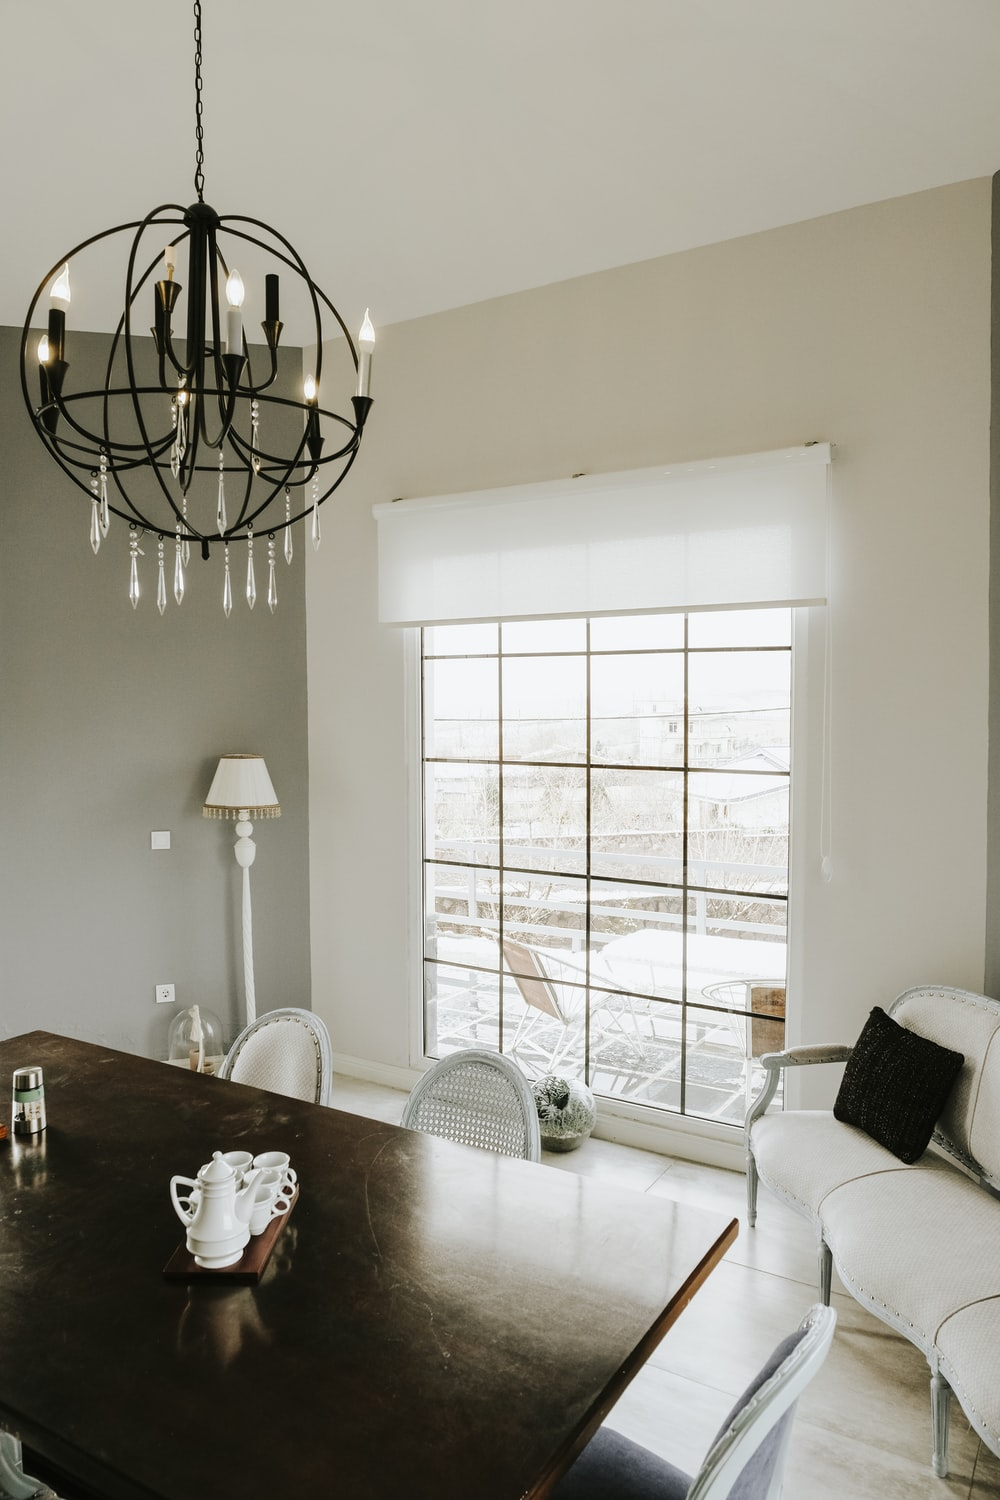 white table lamp on table